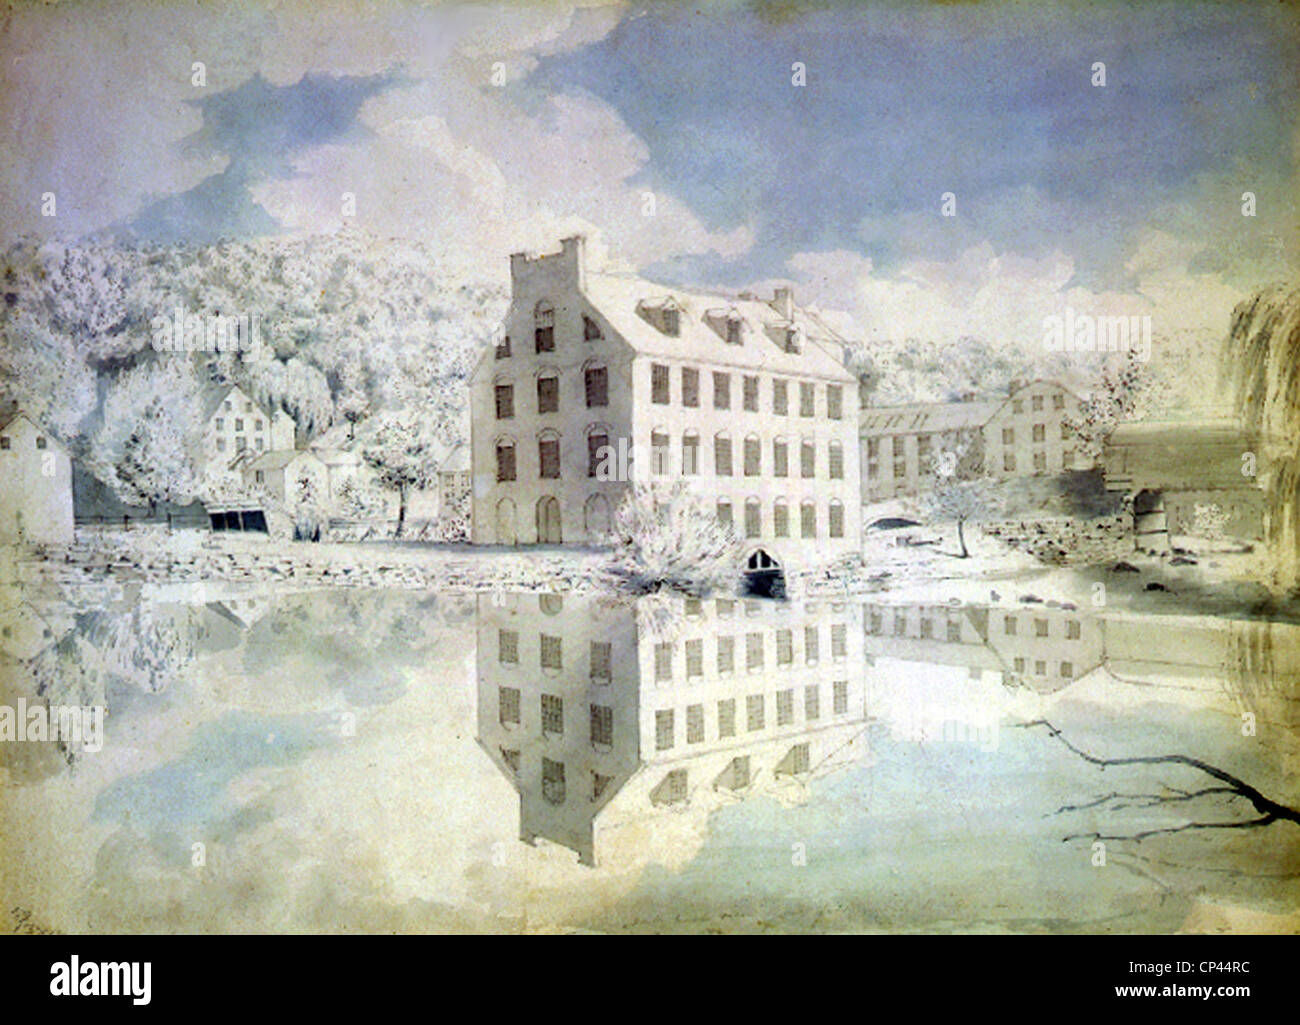 Young's Mill on the Brandywine Creek. ca. 1830 - Stock Image